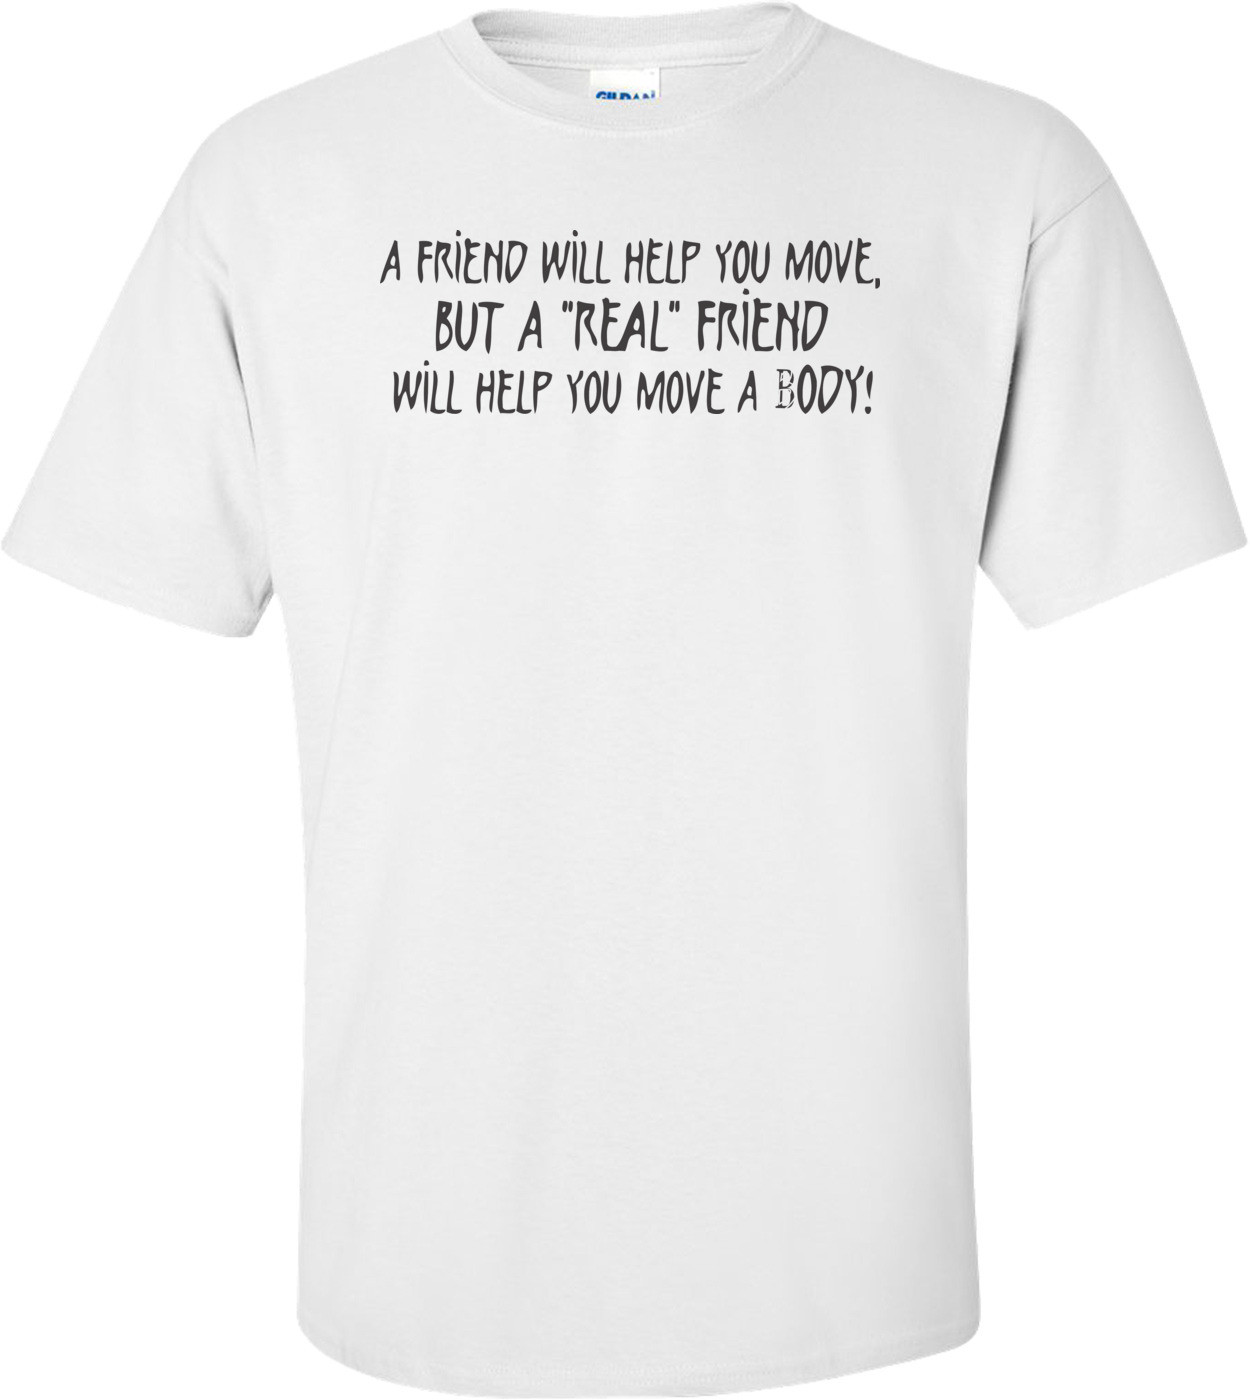 A Friend Will Help You Move But A Real Friend Will Help You Move A Body T-shirt